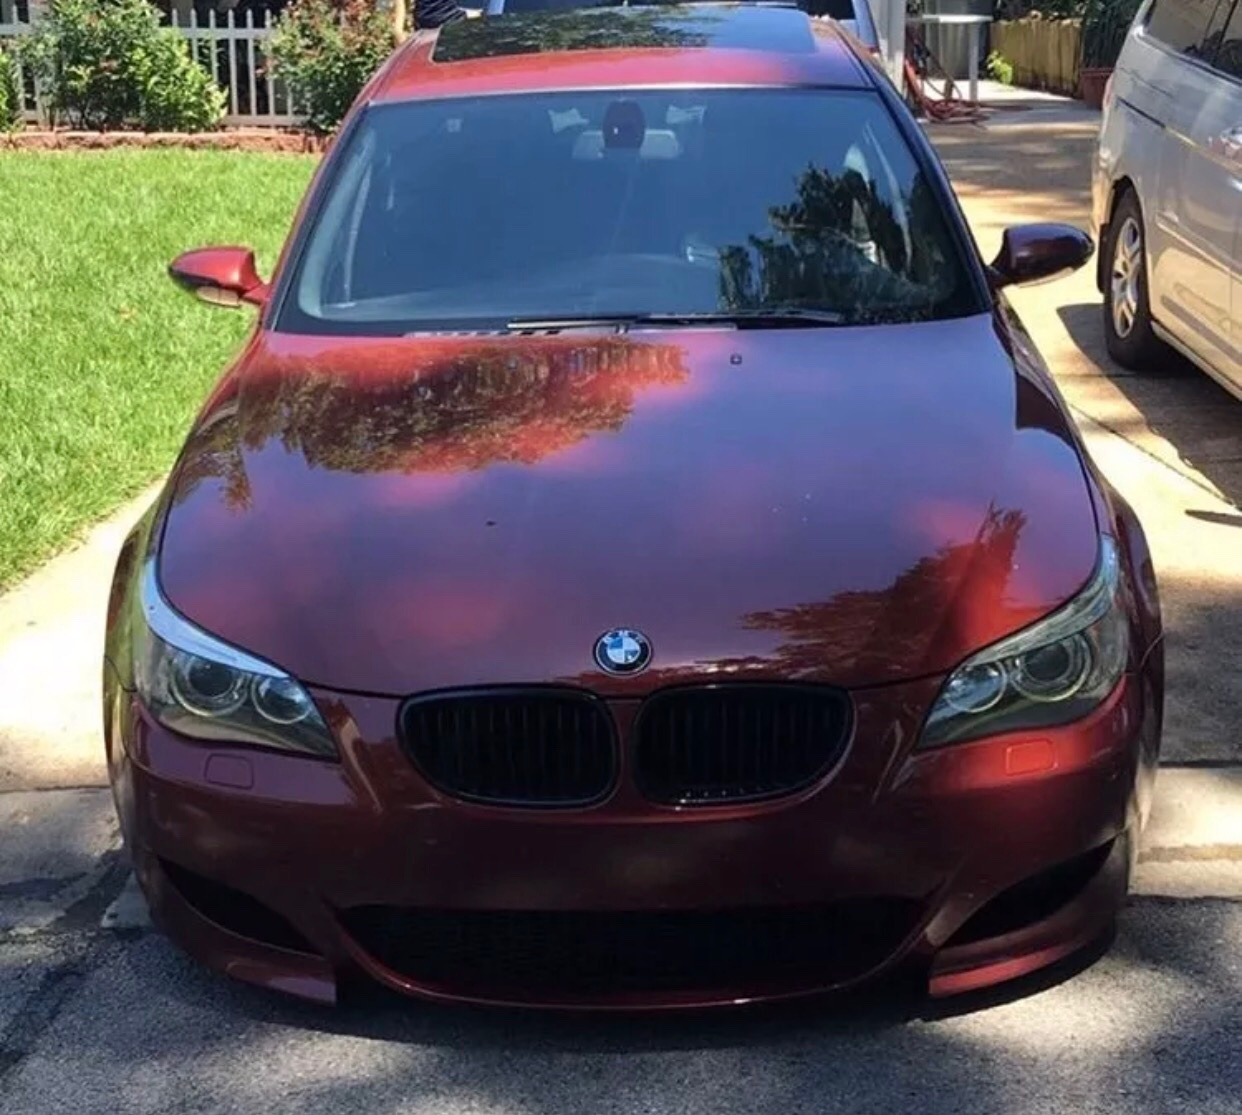 E60 (03-10) For Sale 2006 BMW M5 Indianapolis Red